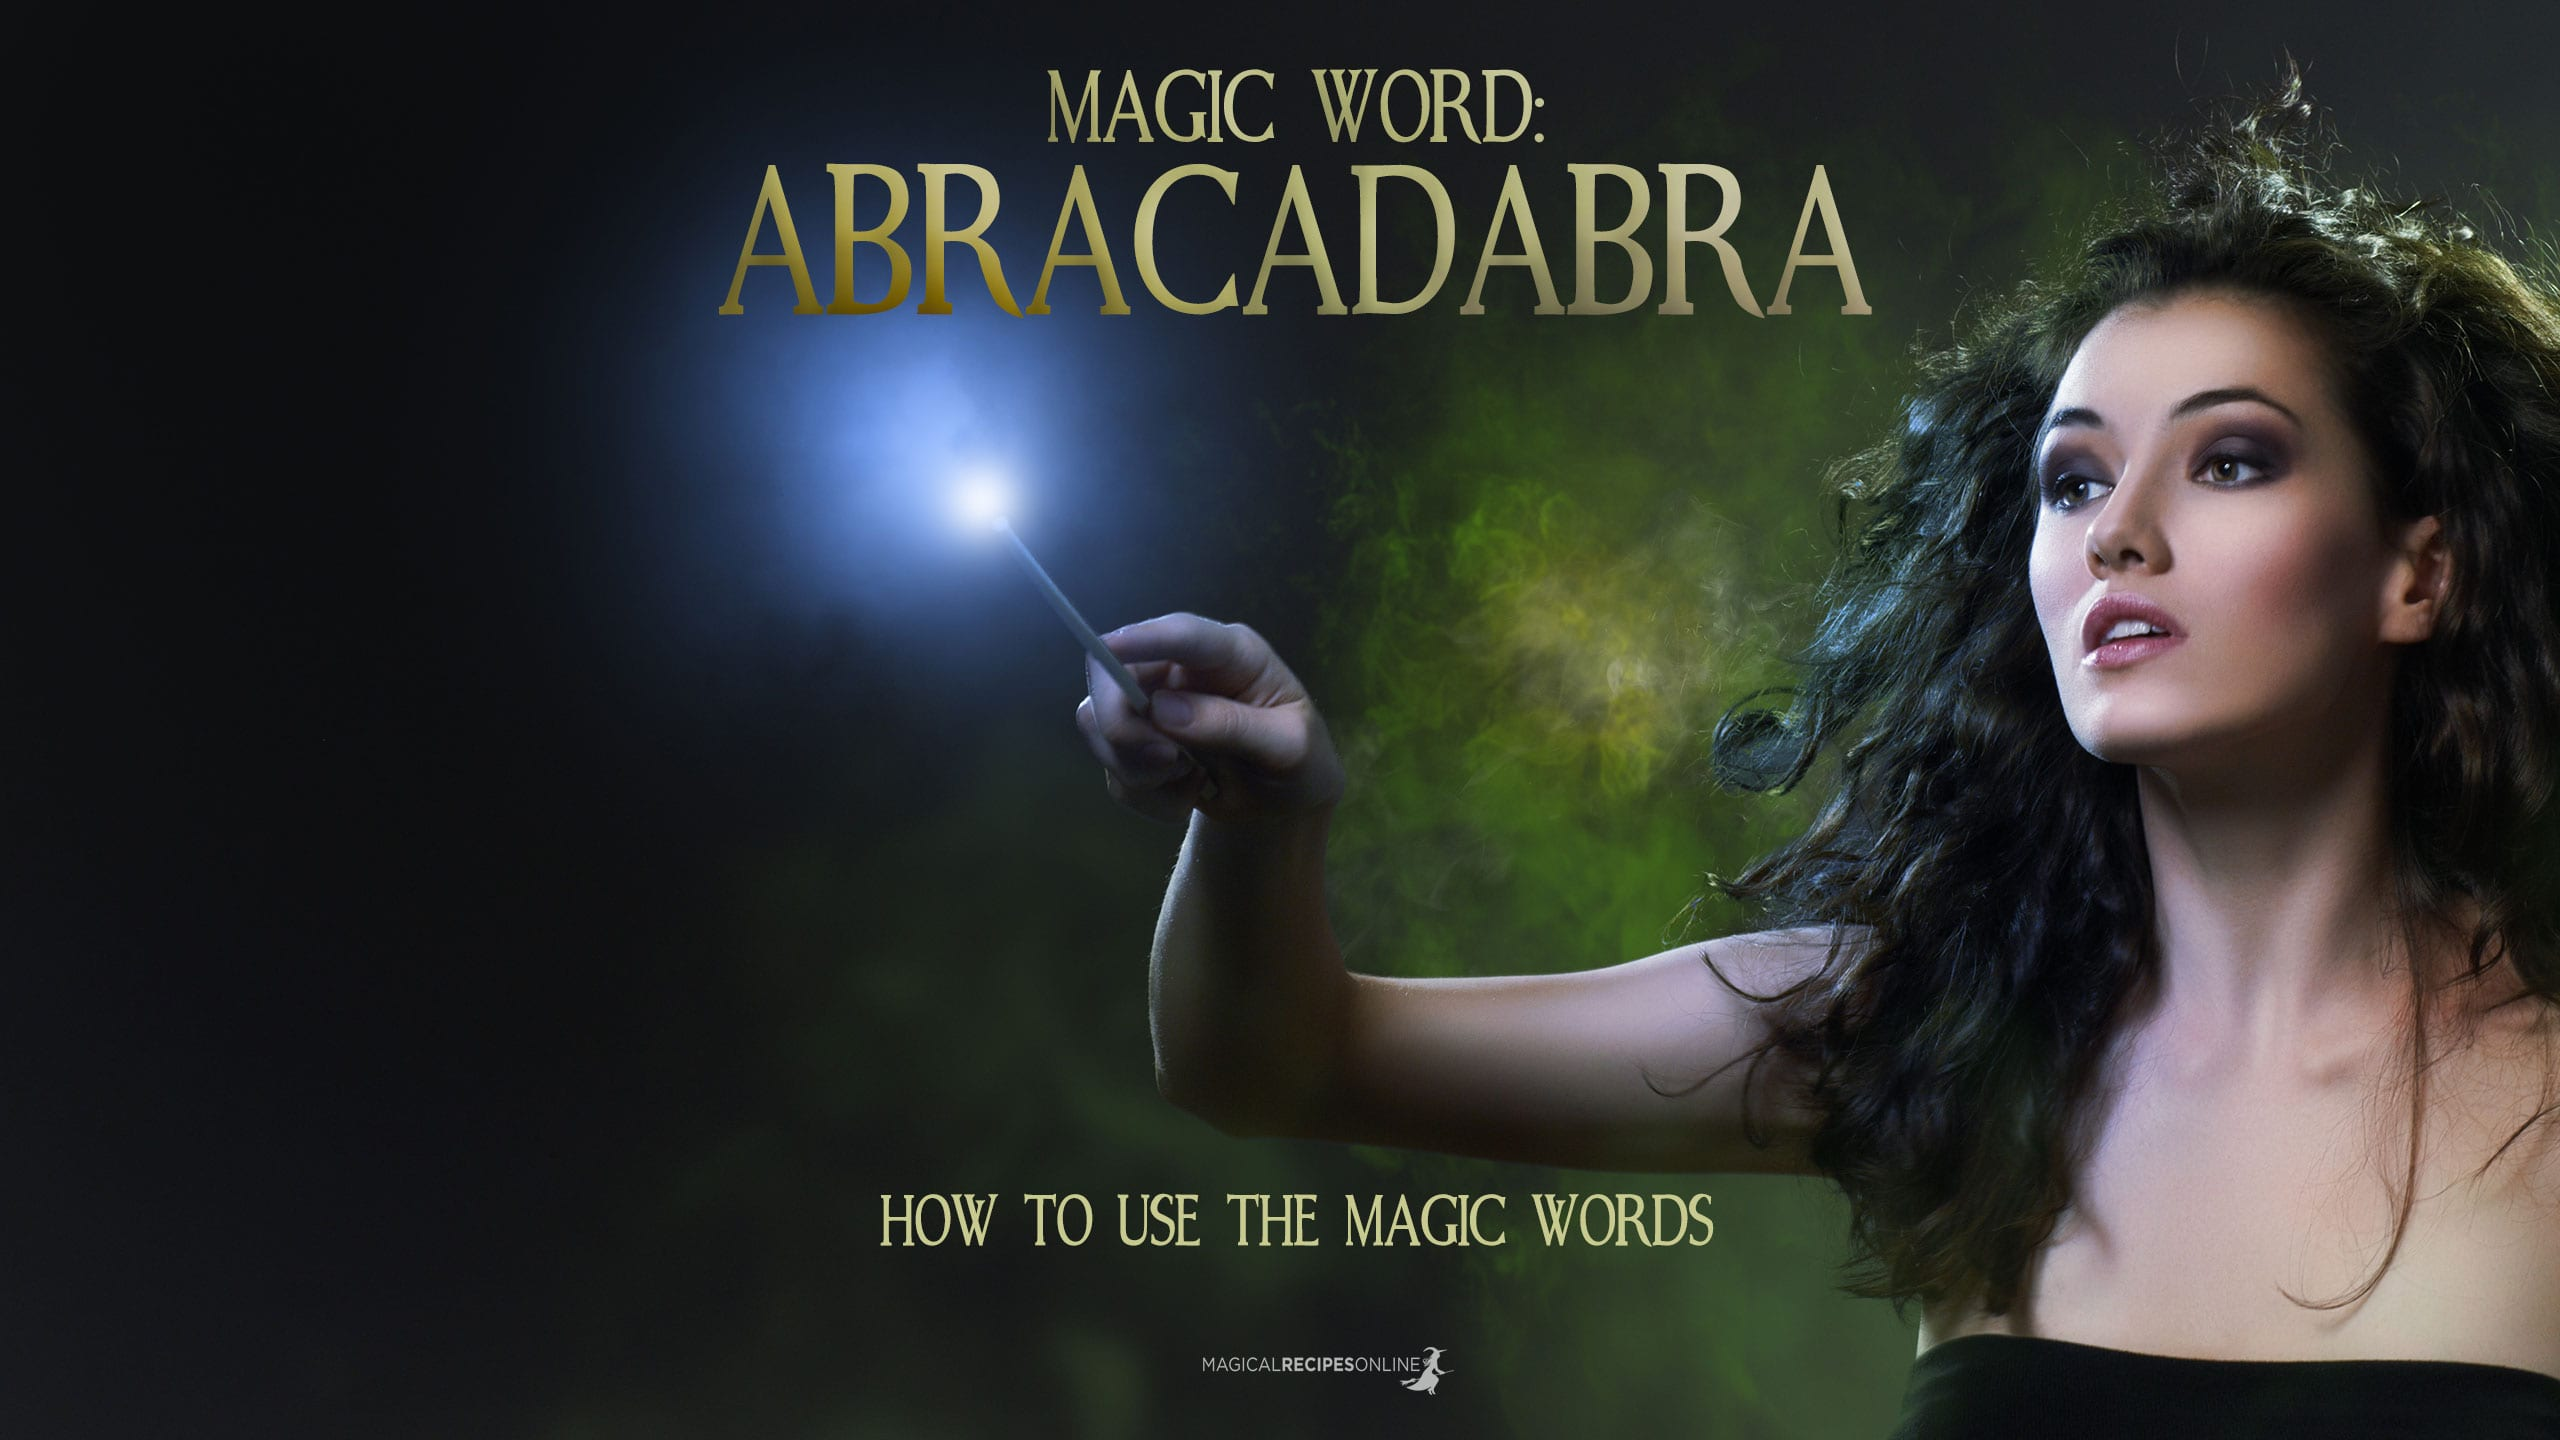 Magic Words: ABRACADABRA - Magical Recipes Online